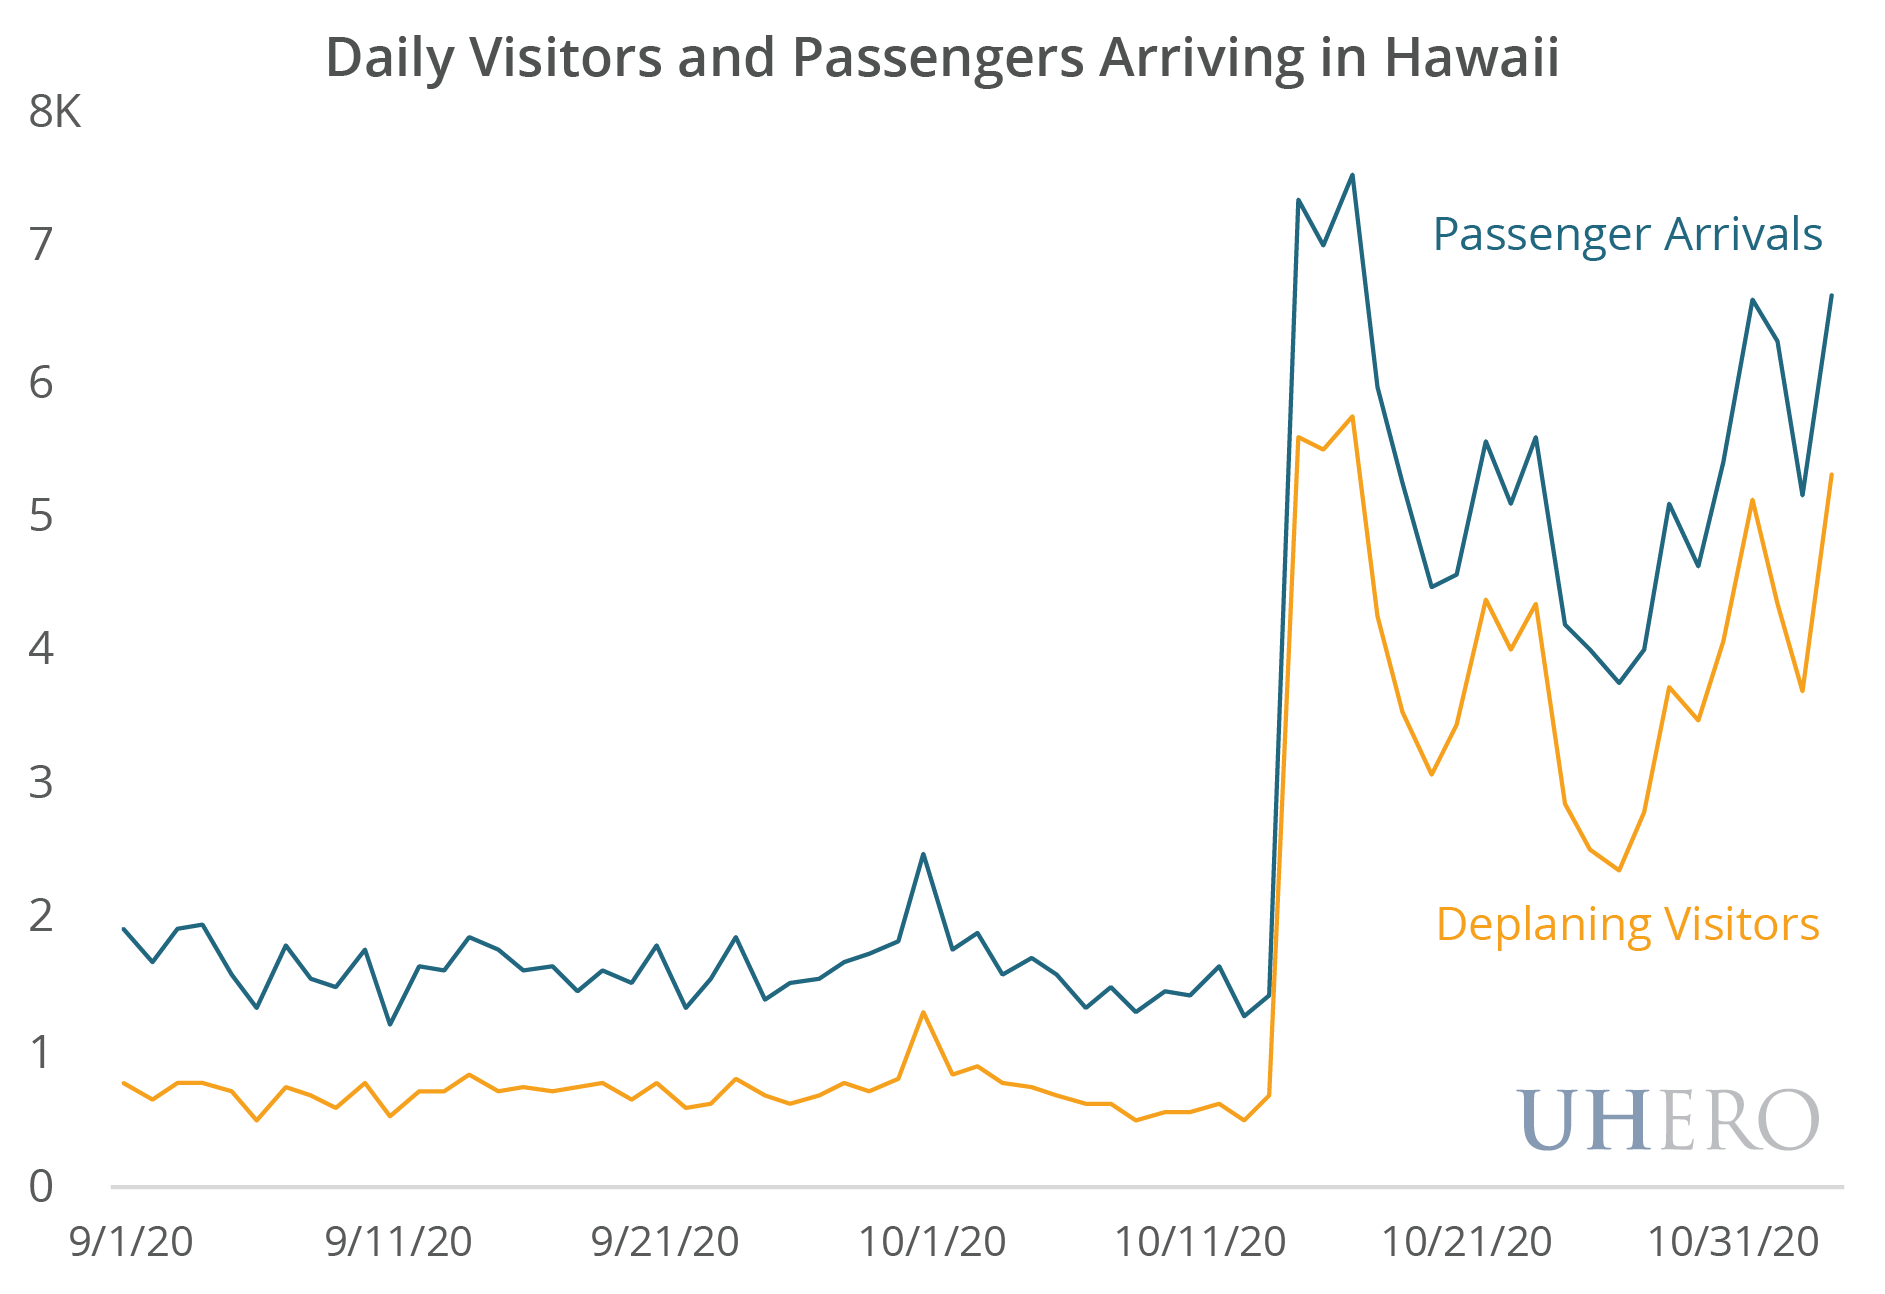 Daily Visitors and Passengers Arriving in Hawaii